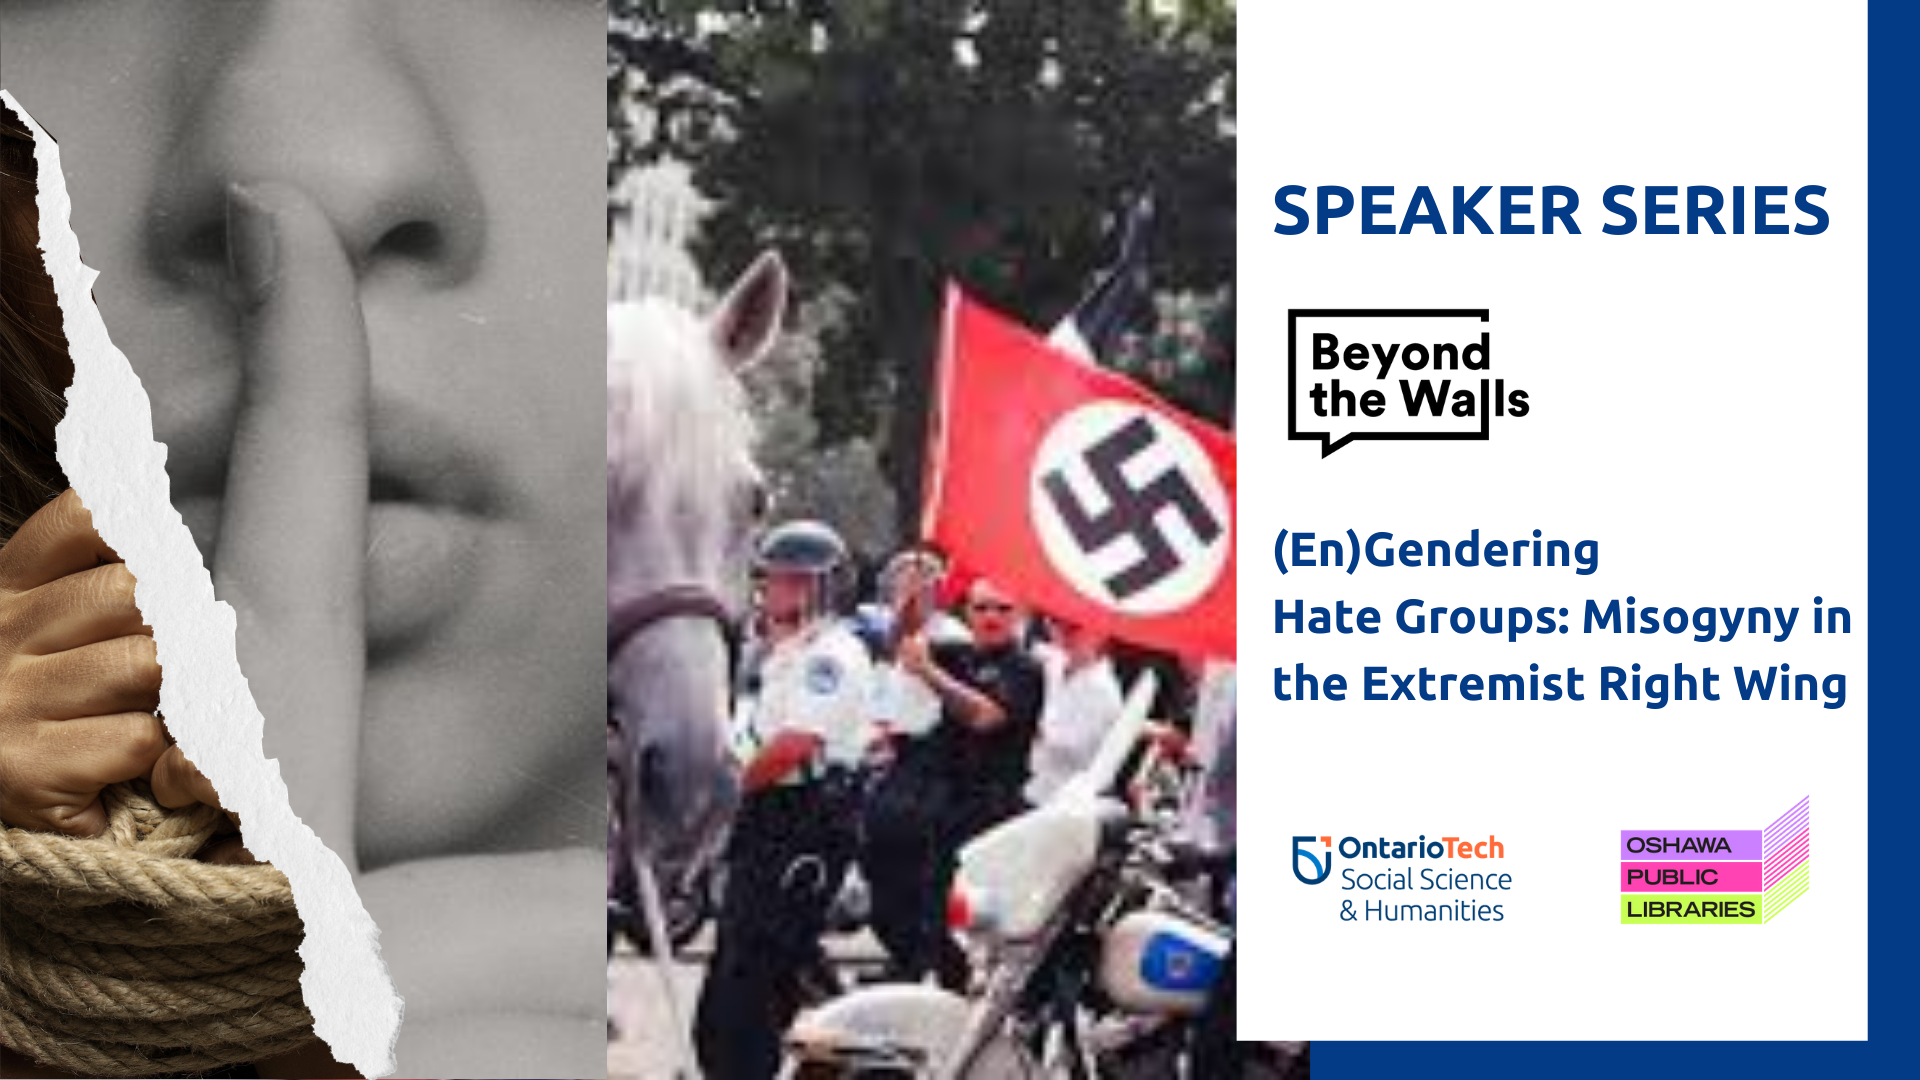 "This is the profile image for the Beyond the Walls public lecture, ""(En)Gendering Hate Groups: Misogyny in the Extremist Right Wing""."